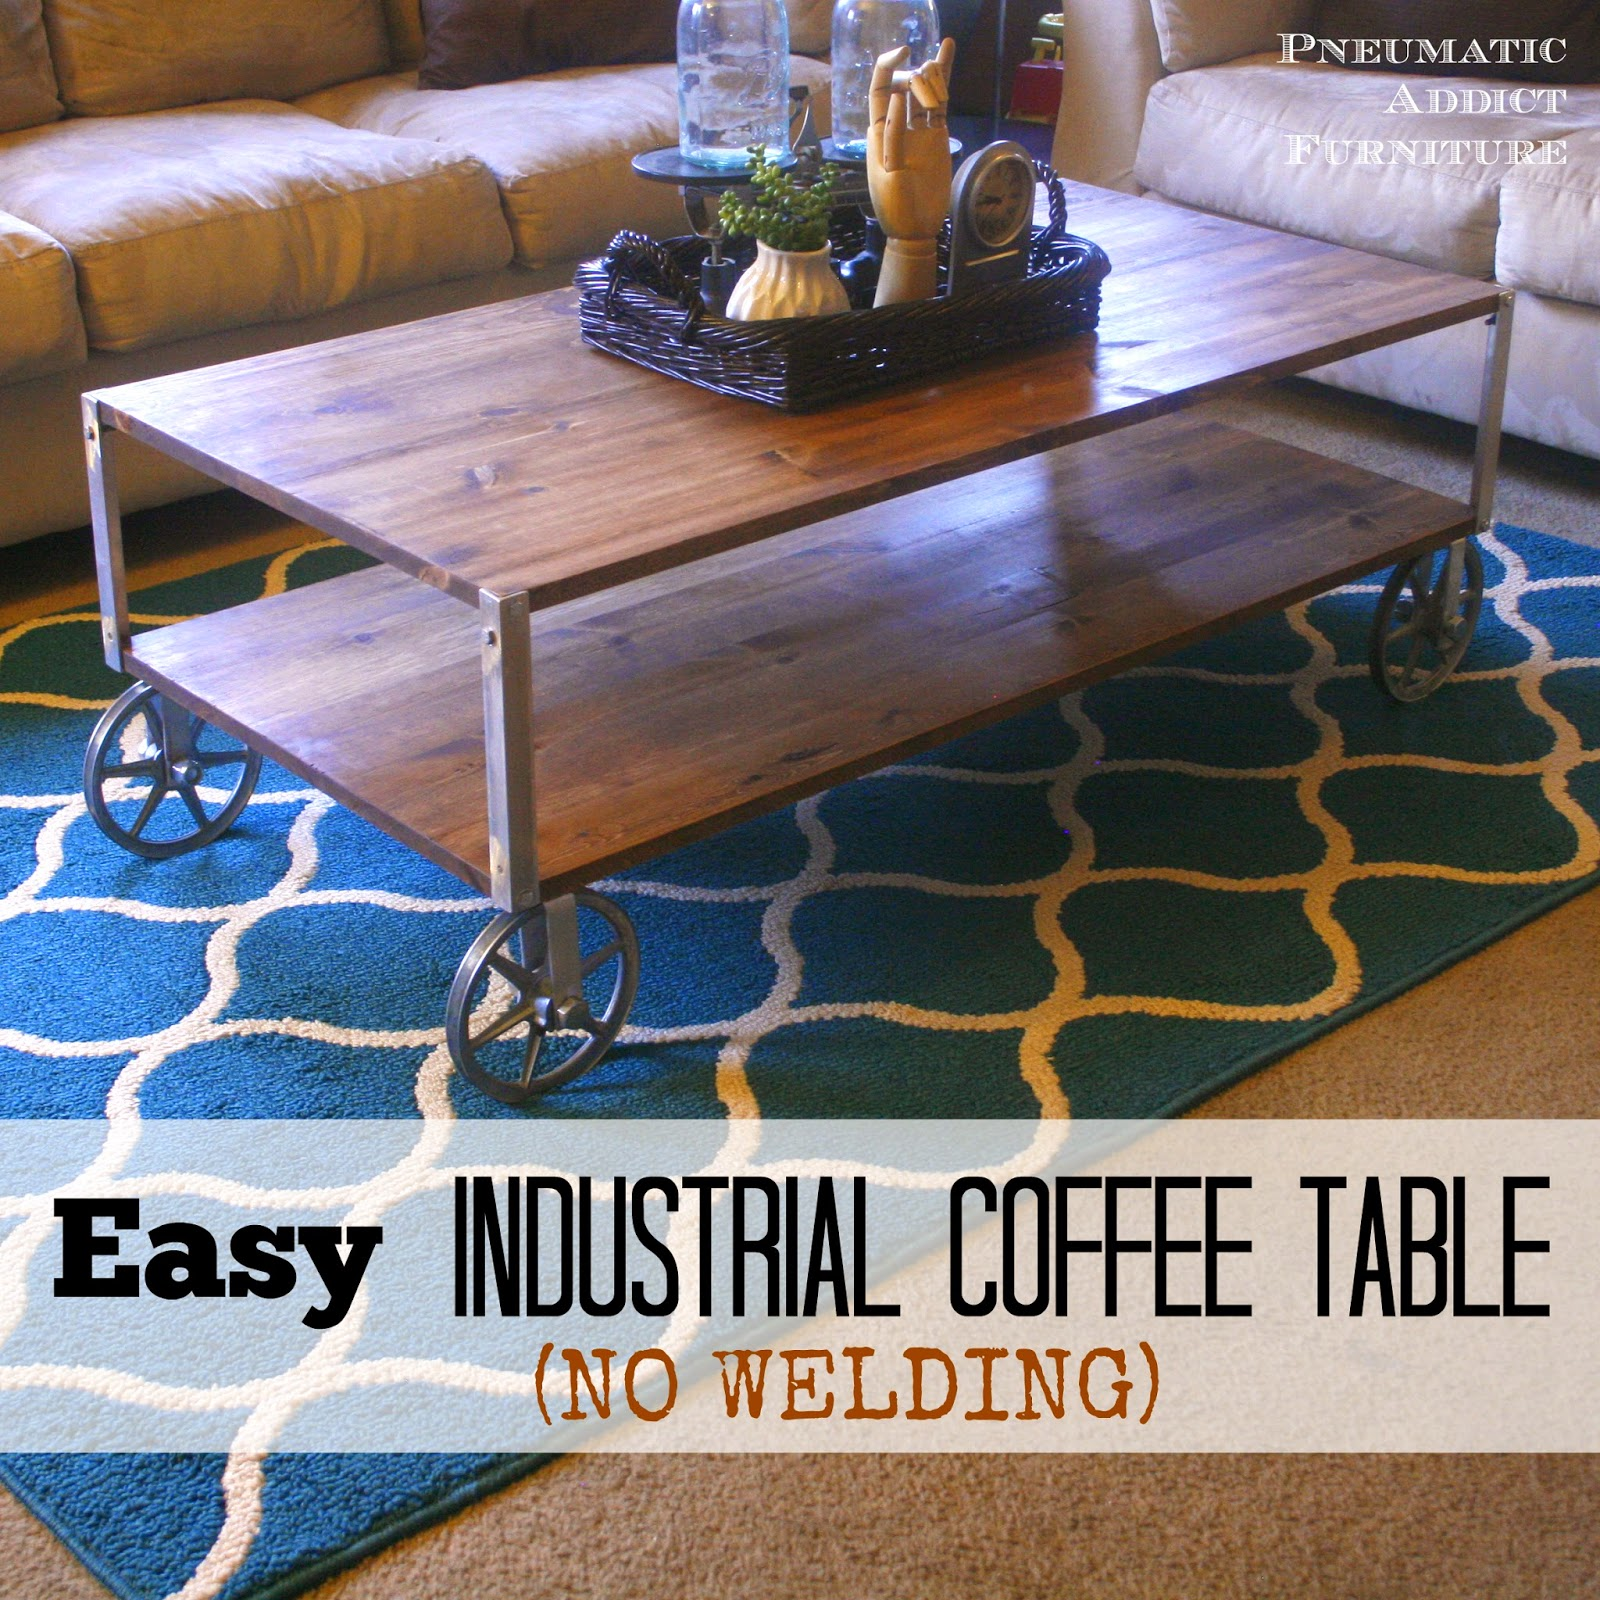 Build Industrial Coffee Table: Easy Industrial Coffee Table - Pneumatic